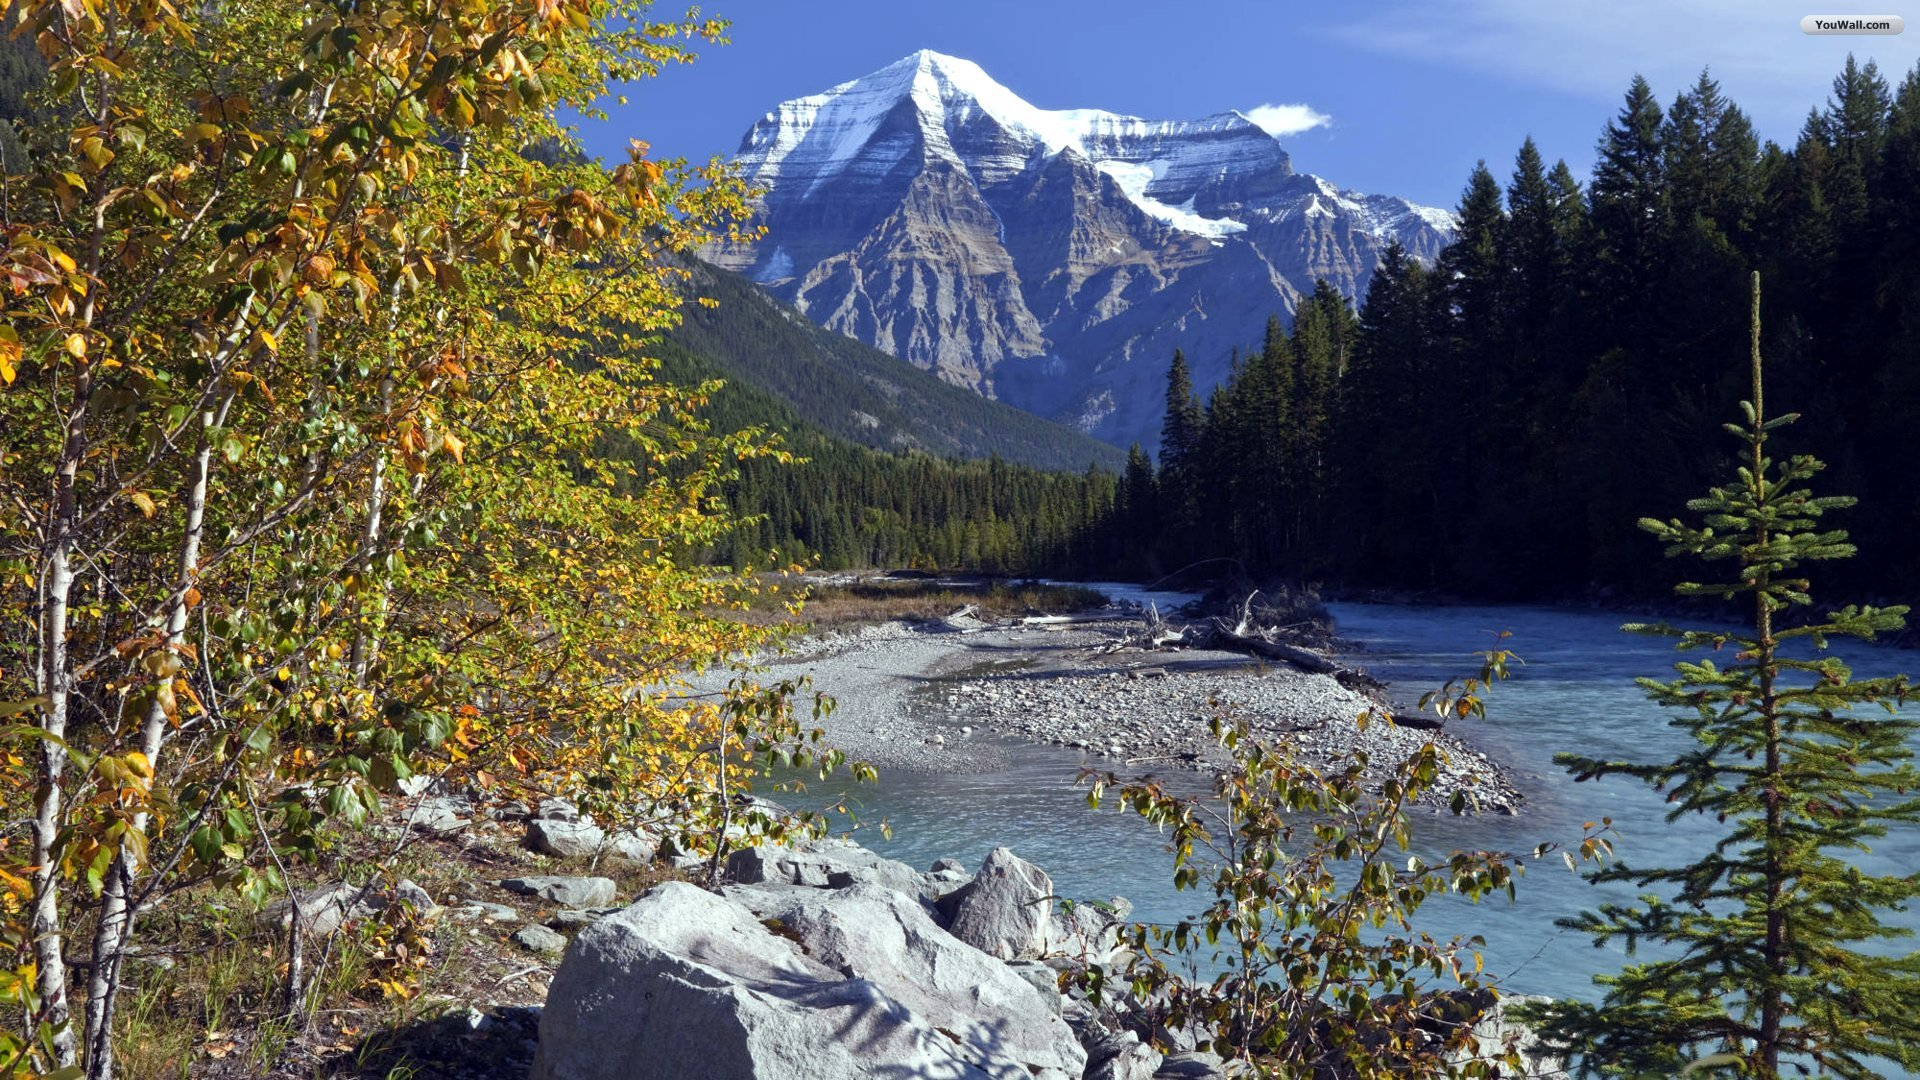 Mountain and River Wallpaper YouWall - Mountain and River Wallpaper - wallpaper,wallpapers,free